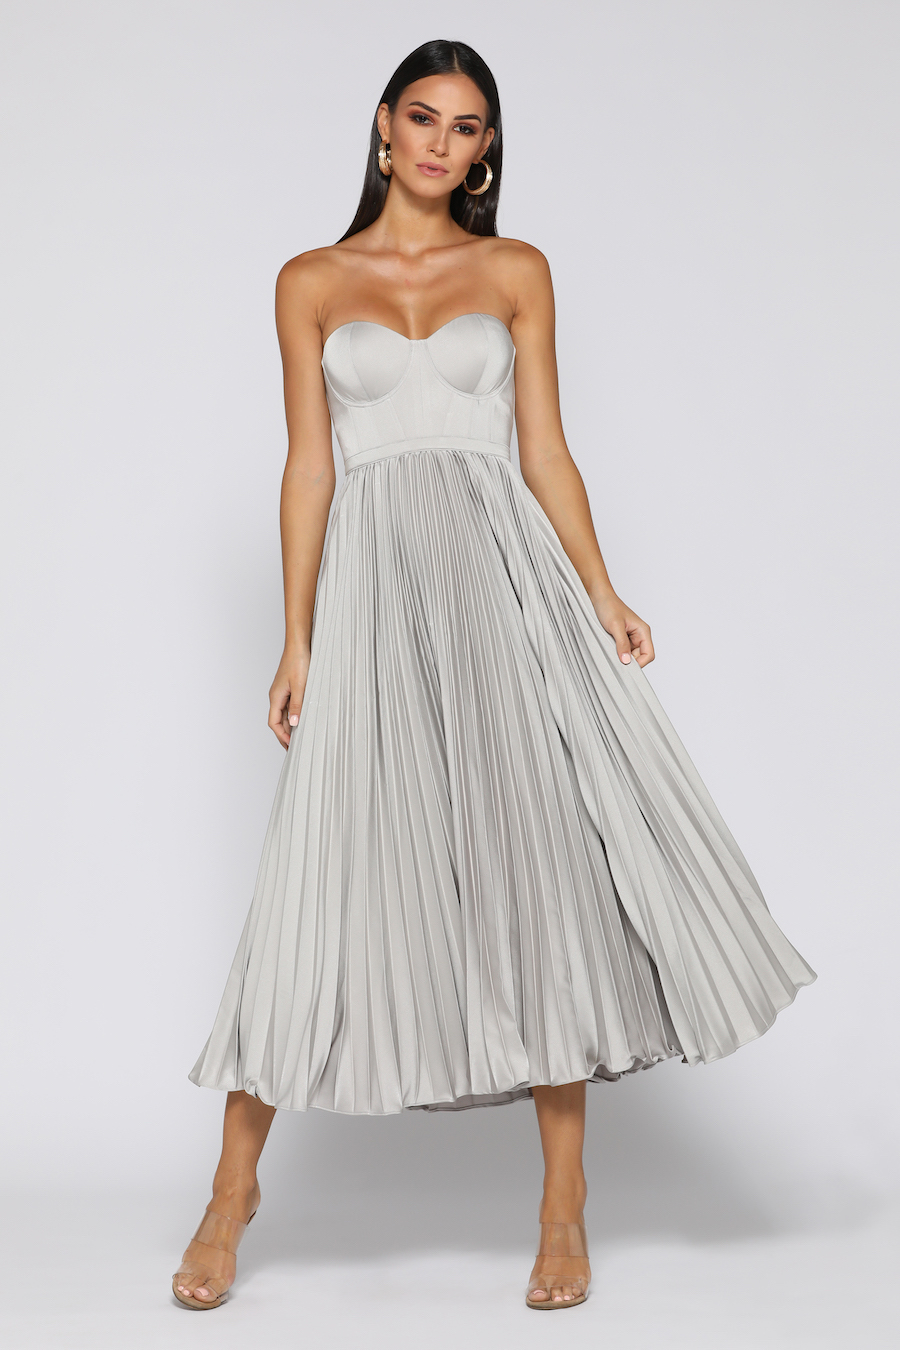 Strapless bodice dress with fluid pleated skirt